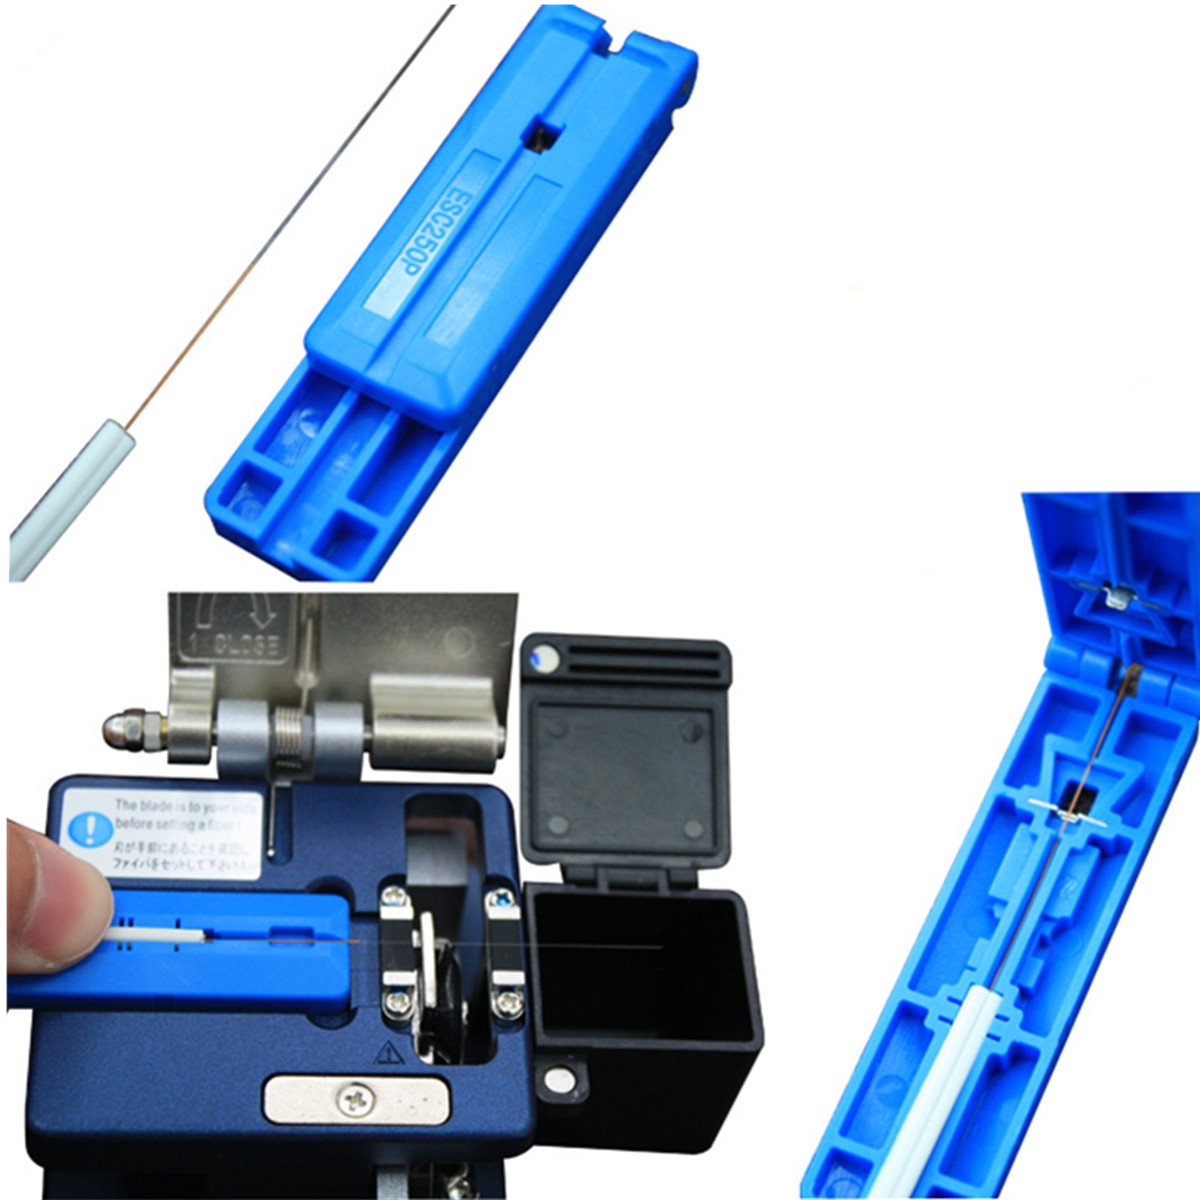 FTTH Splicing Splice Fiber Optic Stripping Tool Kits With Fiber Cleaver FC-6S